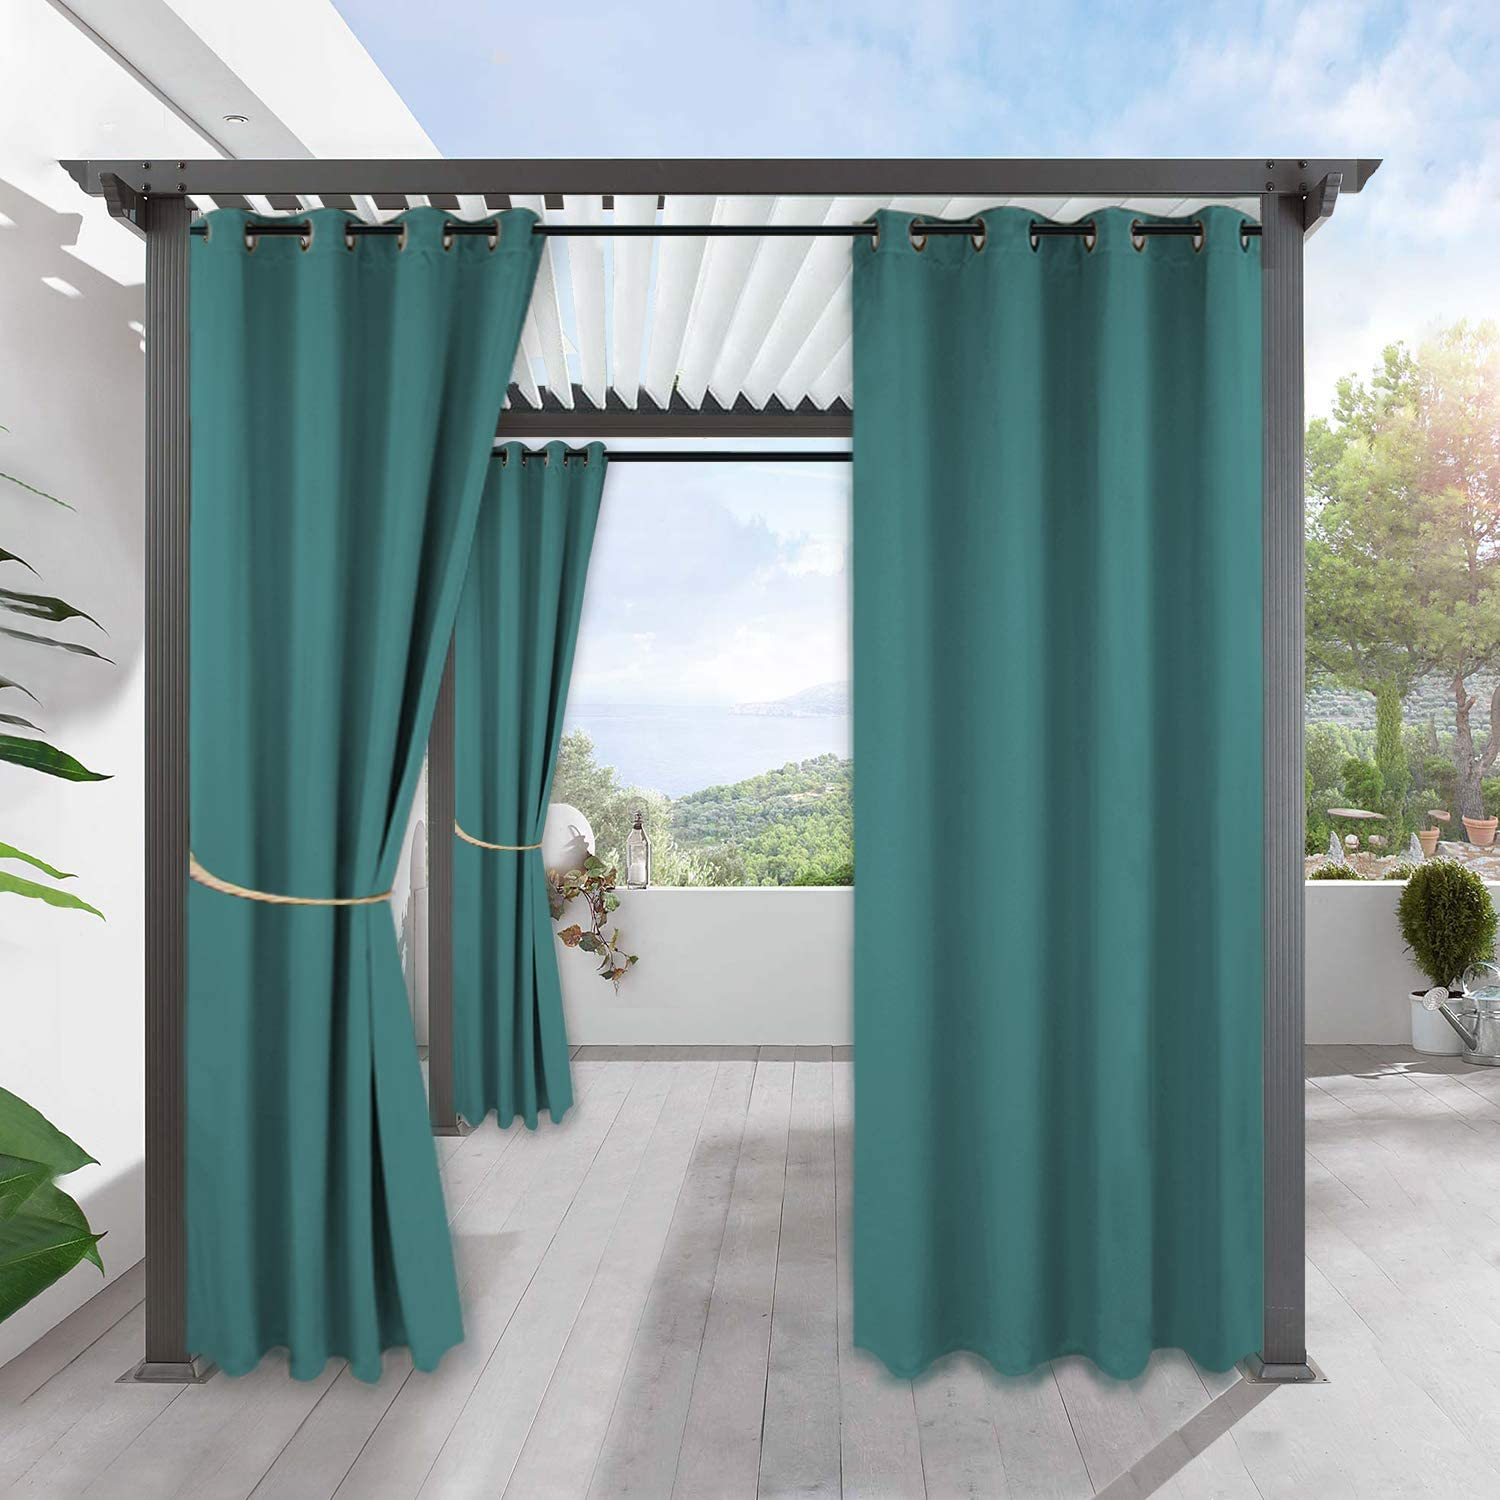 RYB HOME Outdoor Curtains Waterproof - Blackout UV Protection Indoor Outdoor Patio Curtains Weatherproof Thermal Insulated Panel for Pavilion Gazebo Porch, 1 Pc, W 52 x L 84 inches, Teal